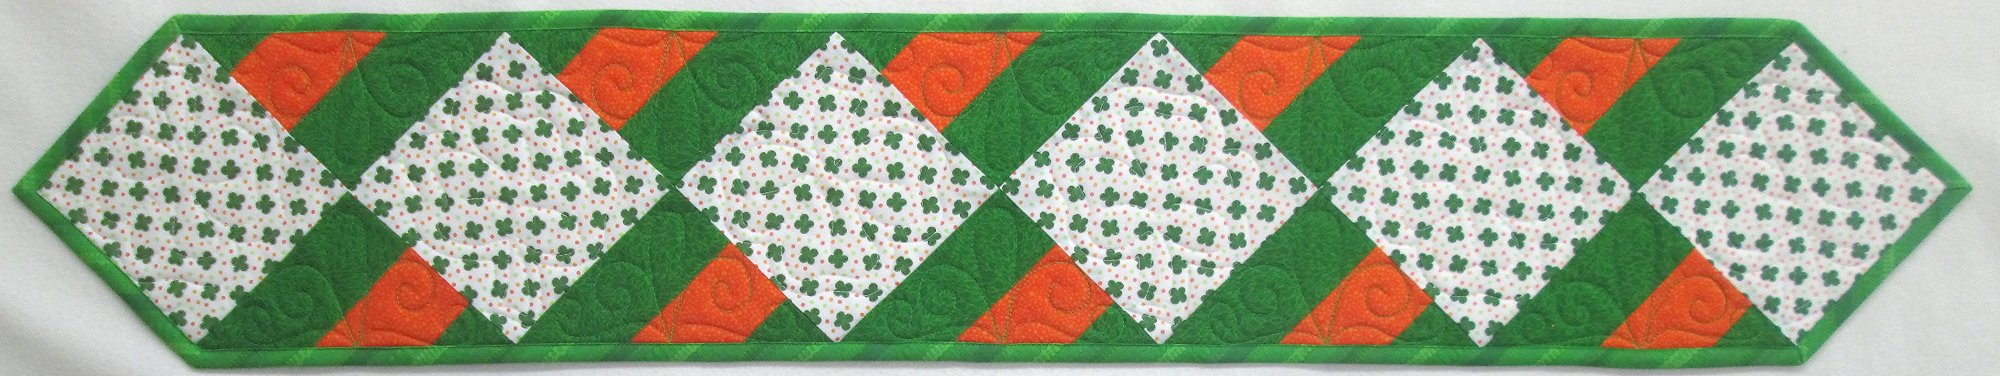 Shamrock Rail Splits Table Runner Kit